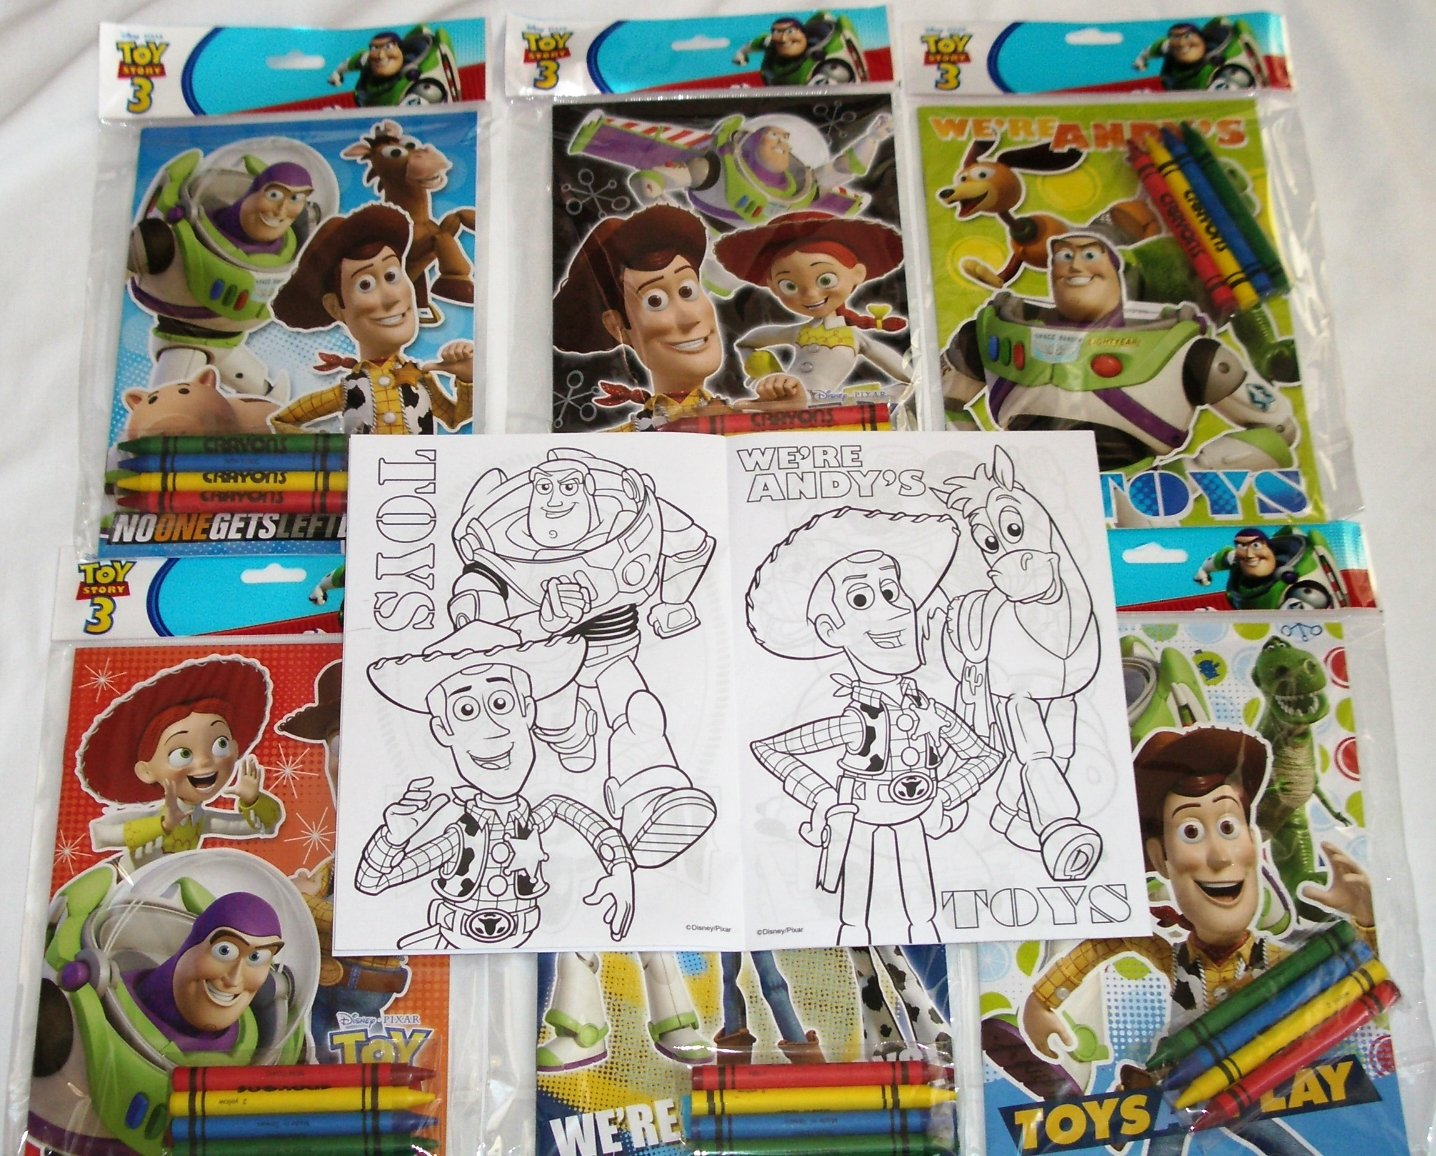 Amazon.com: 12 Sets of Disney Pixar Toy Story Coloring Books and ...